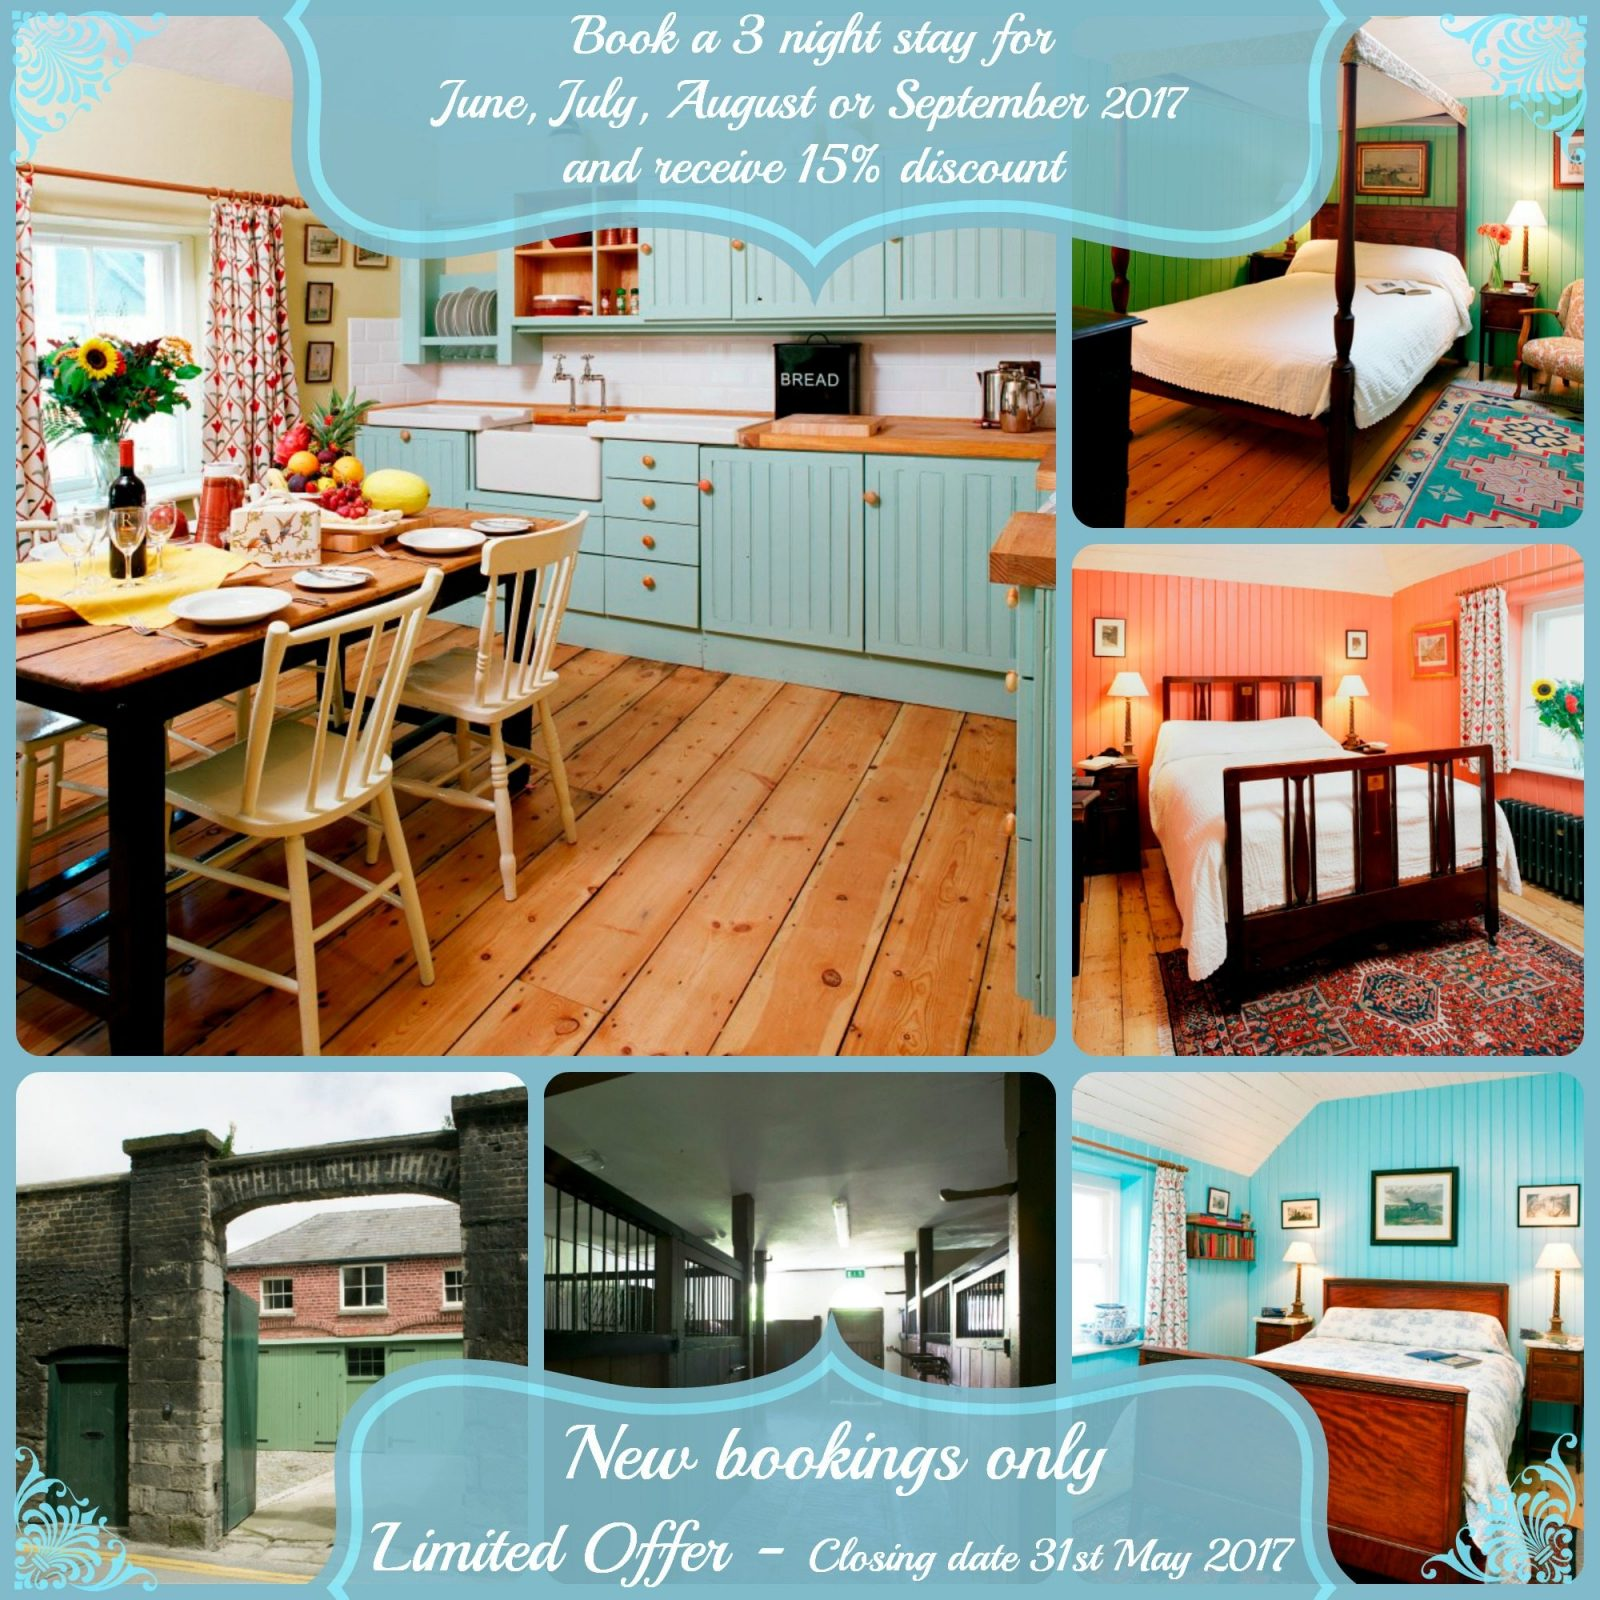 Merrion Mews Special Offer